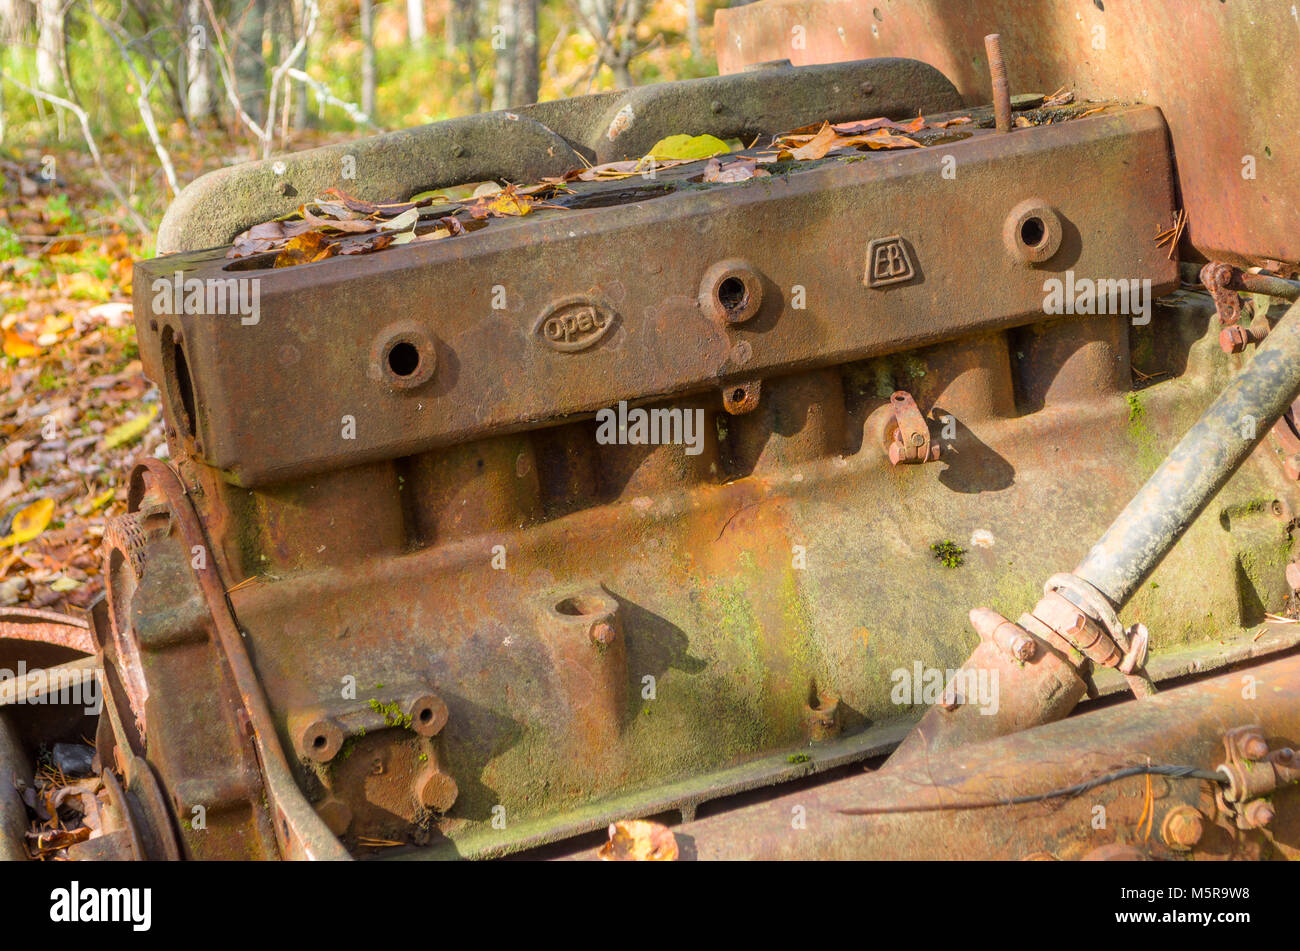 Rusty remains of destroyed wrack of old Opel halftruck car, used in now abandoned feldspat mine. Evje, central Norway. - Stock Image